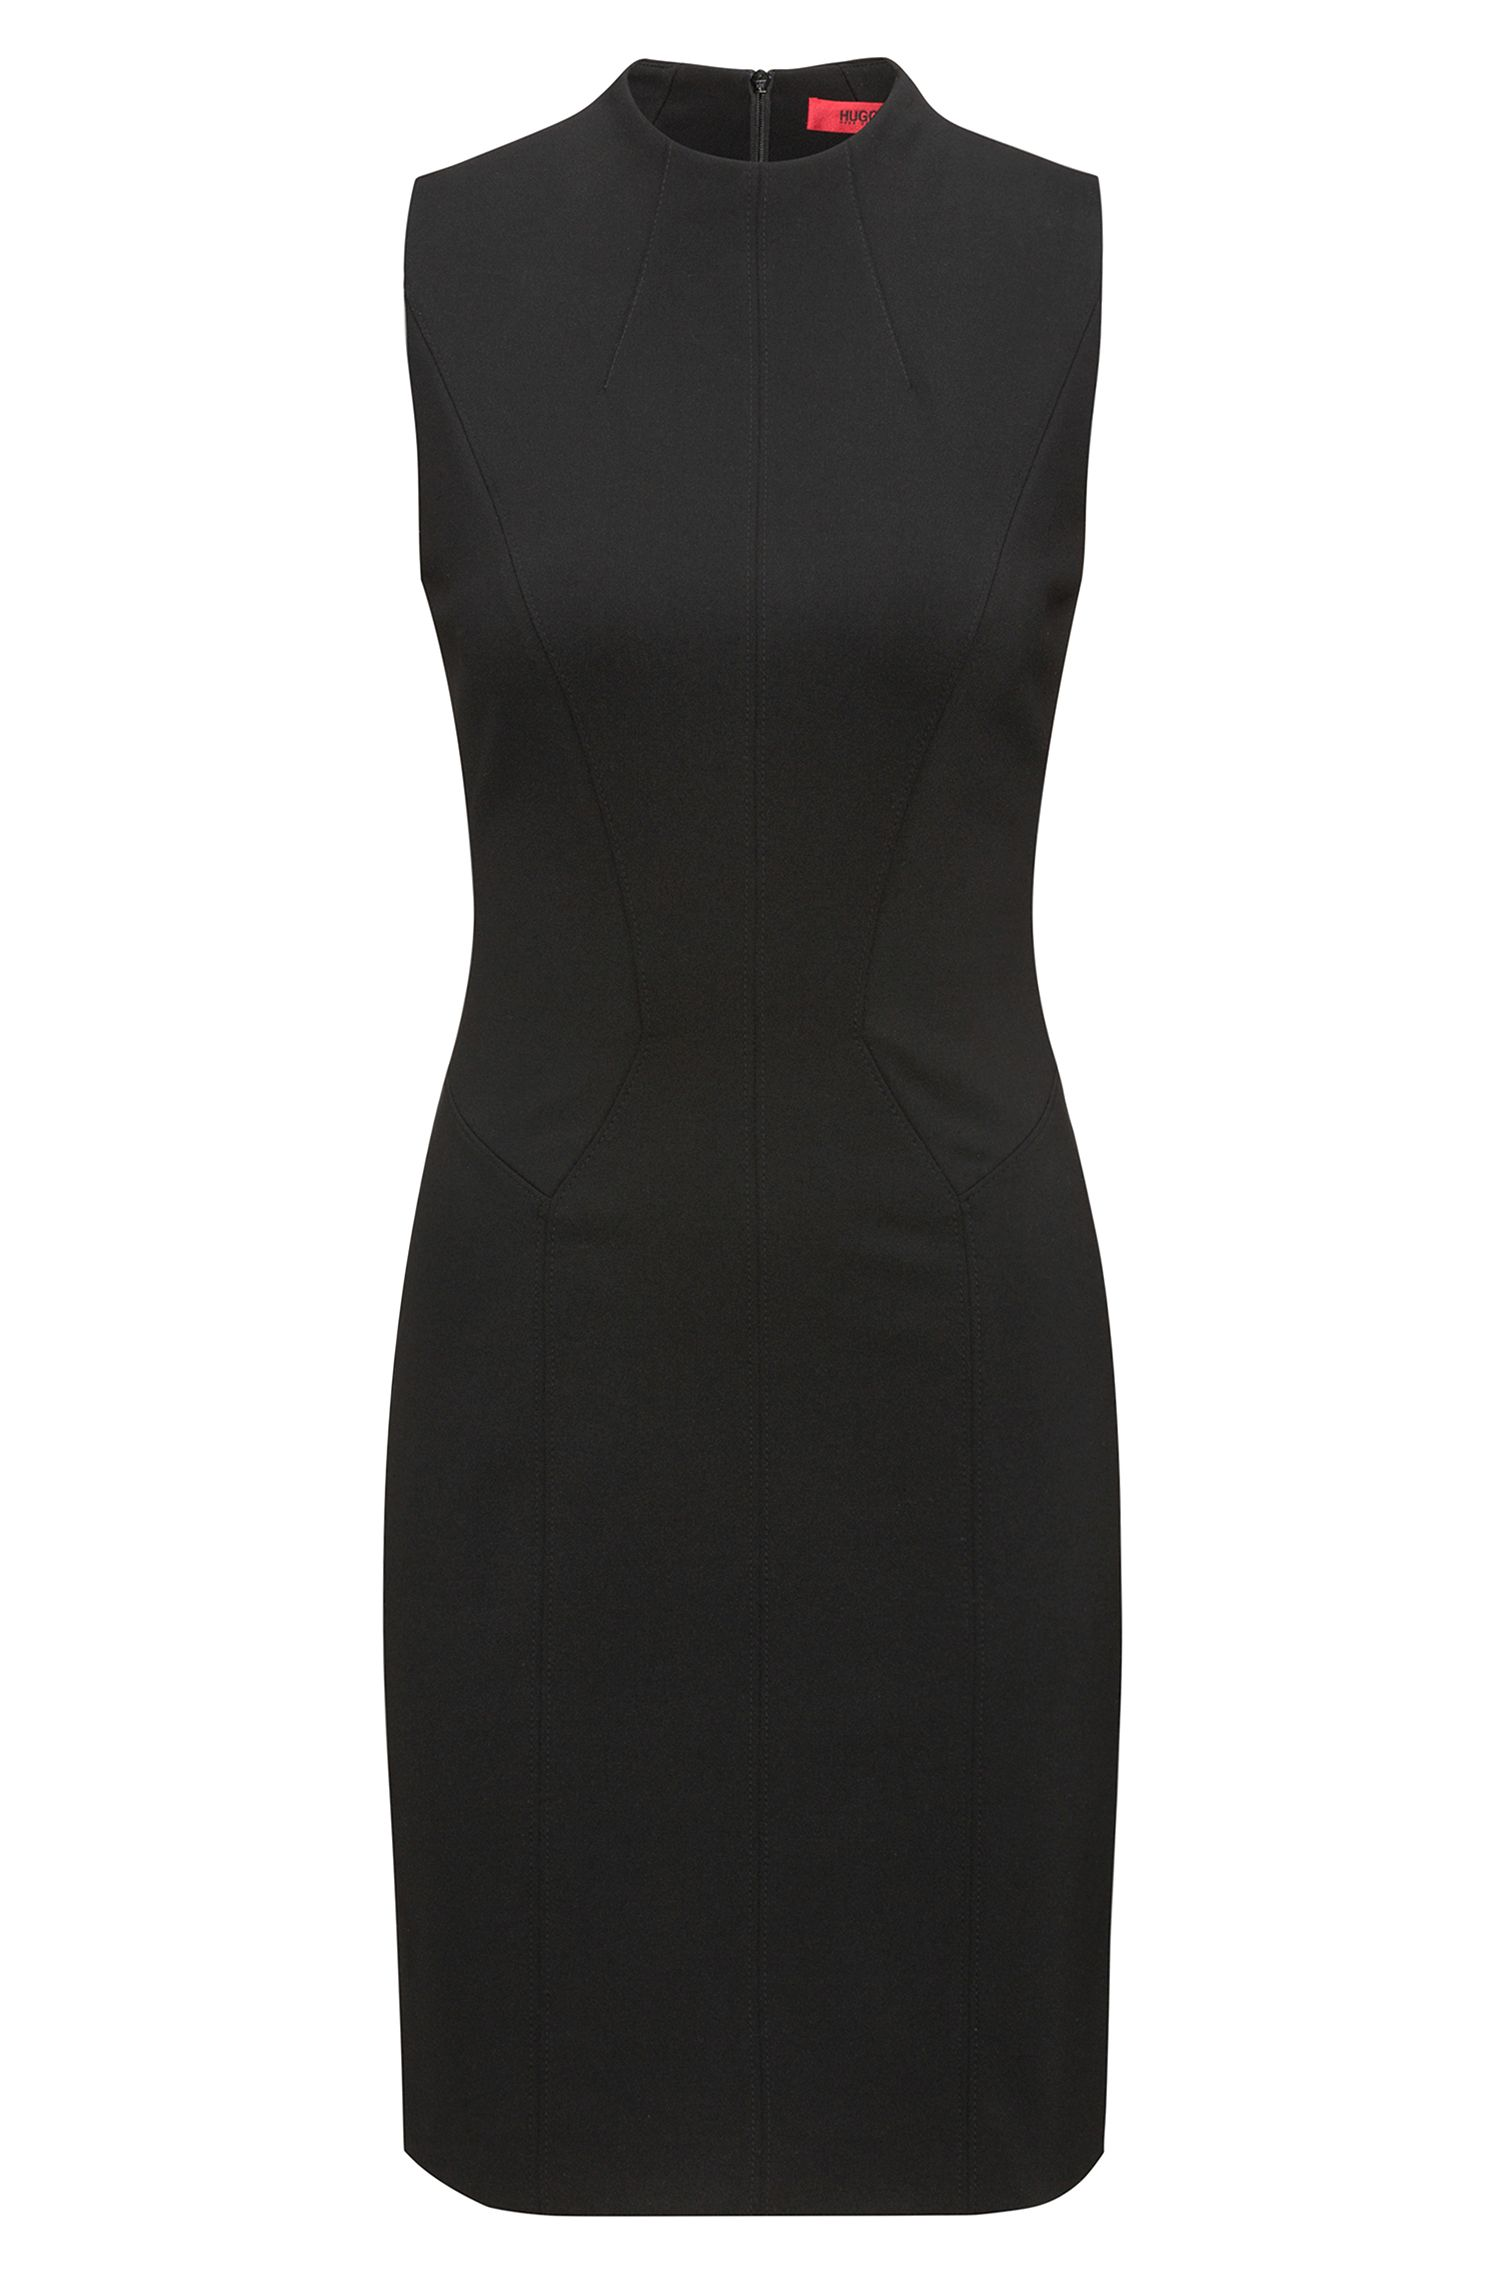 High-Collar Sheath Dress | Kihara